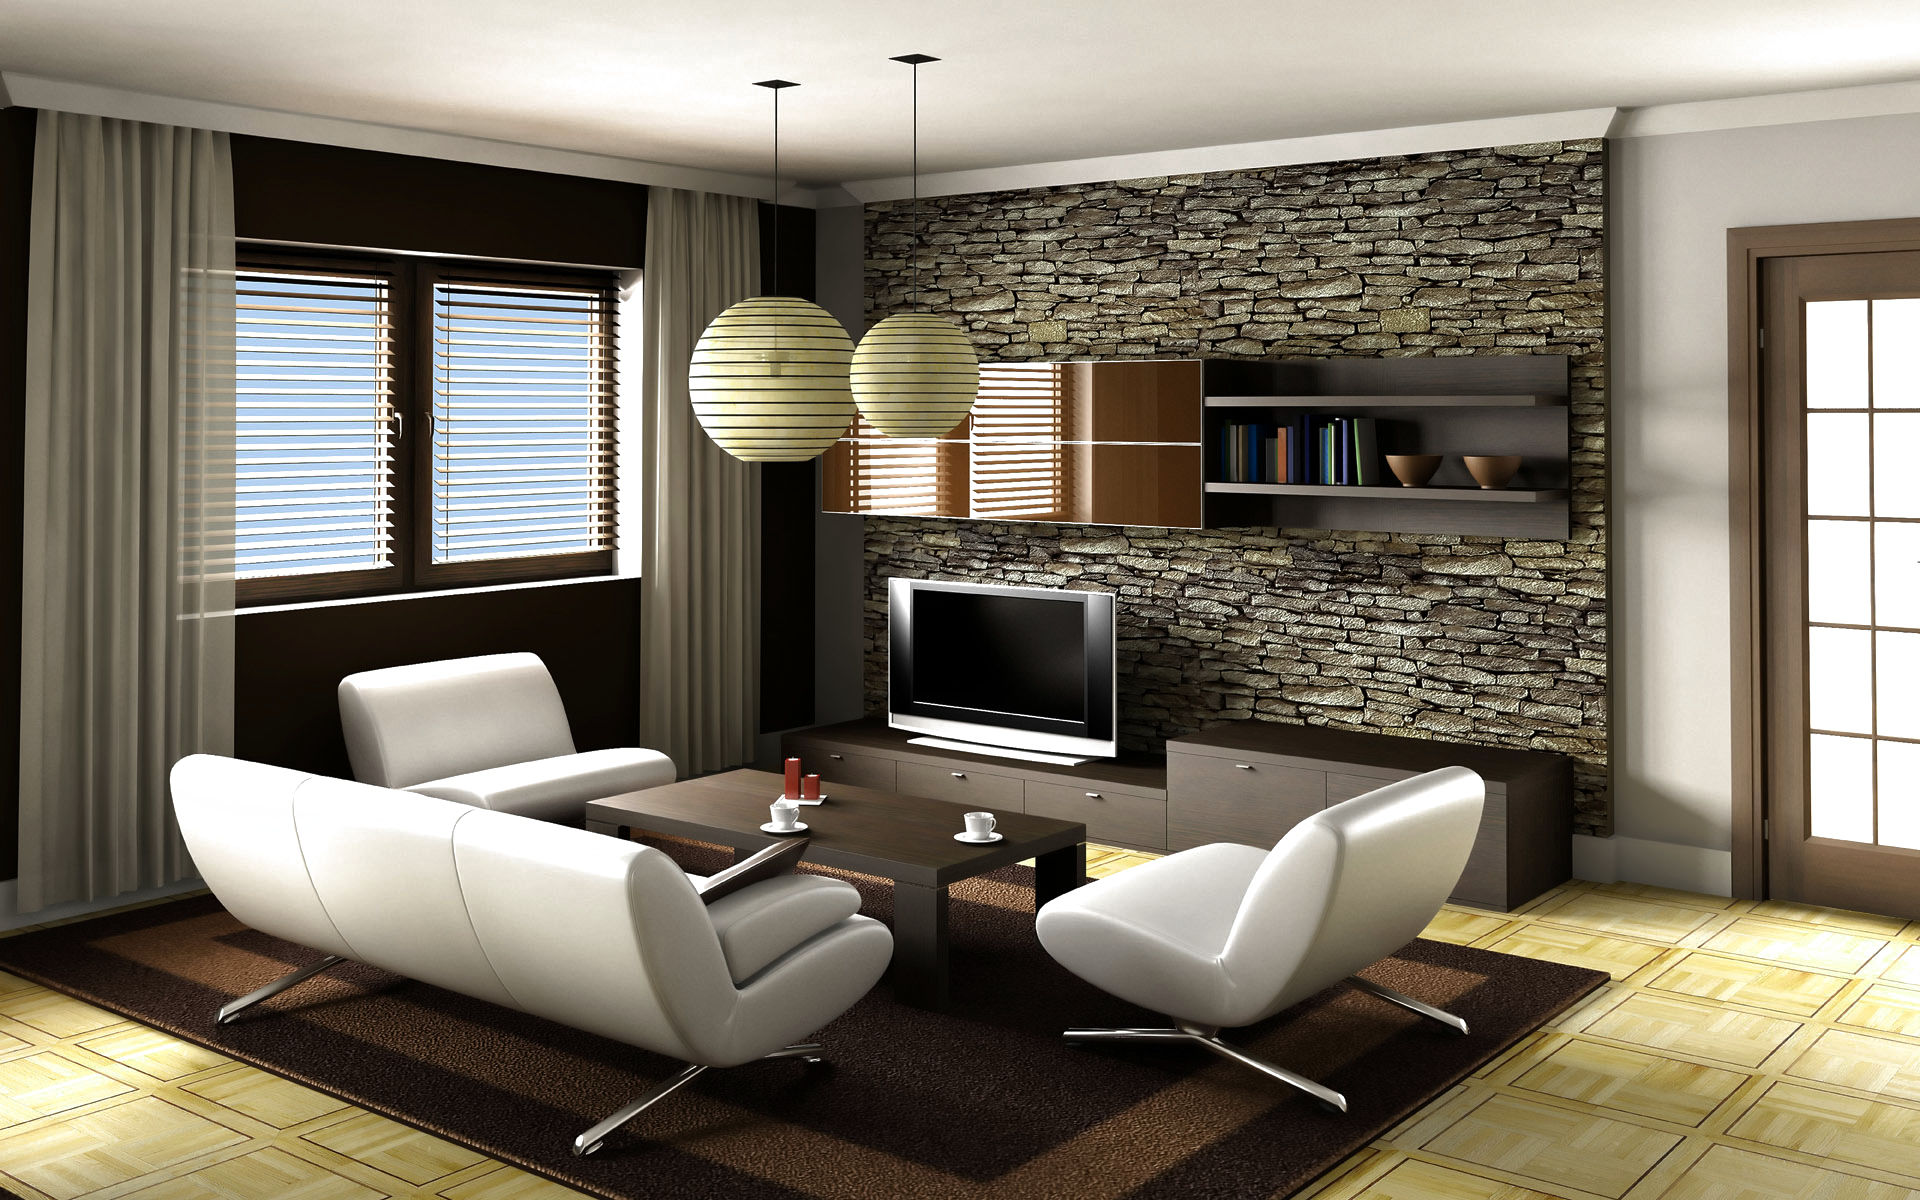 16 modern living room furniture ideas design hgnv com for Room design pic